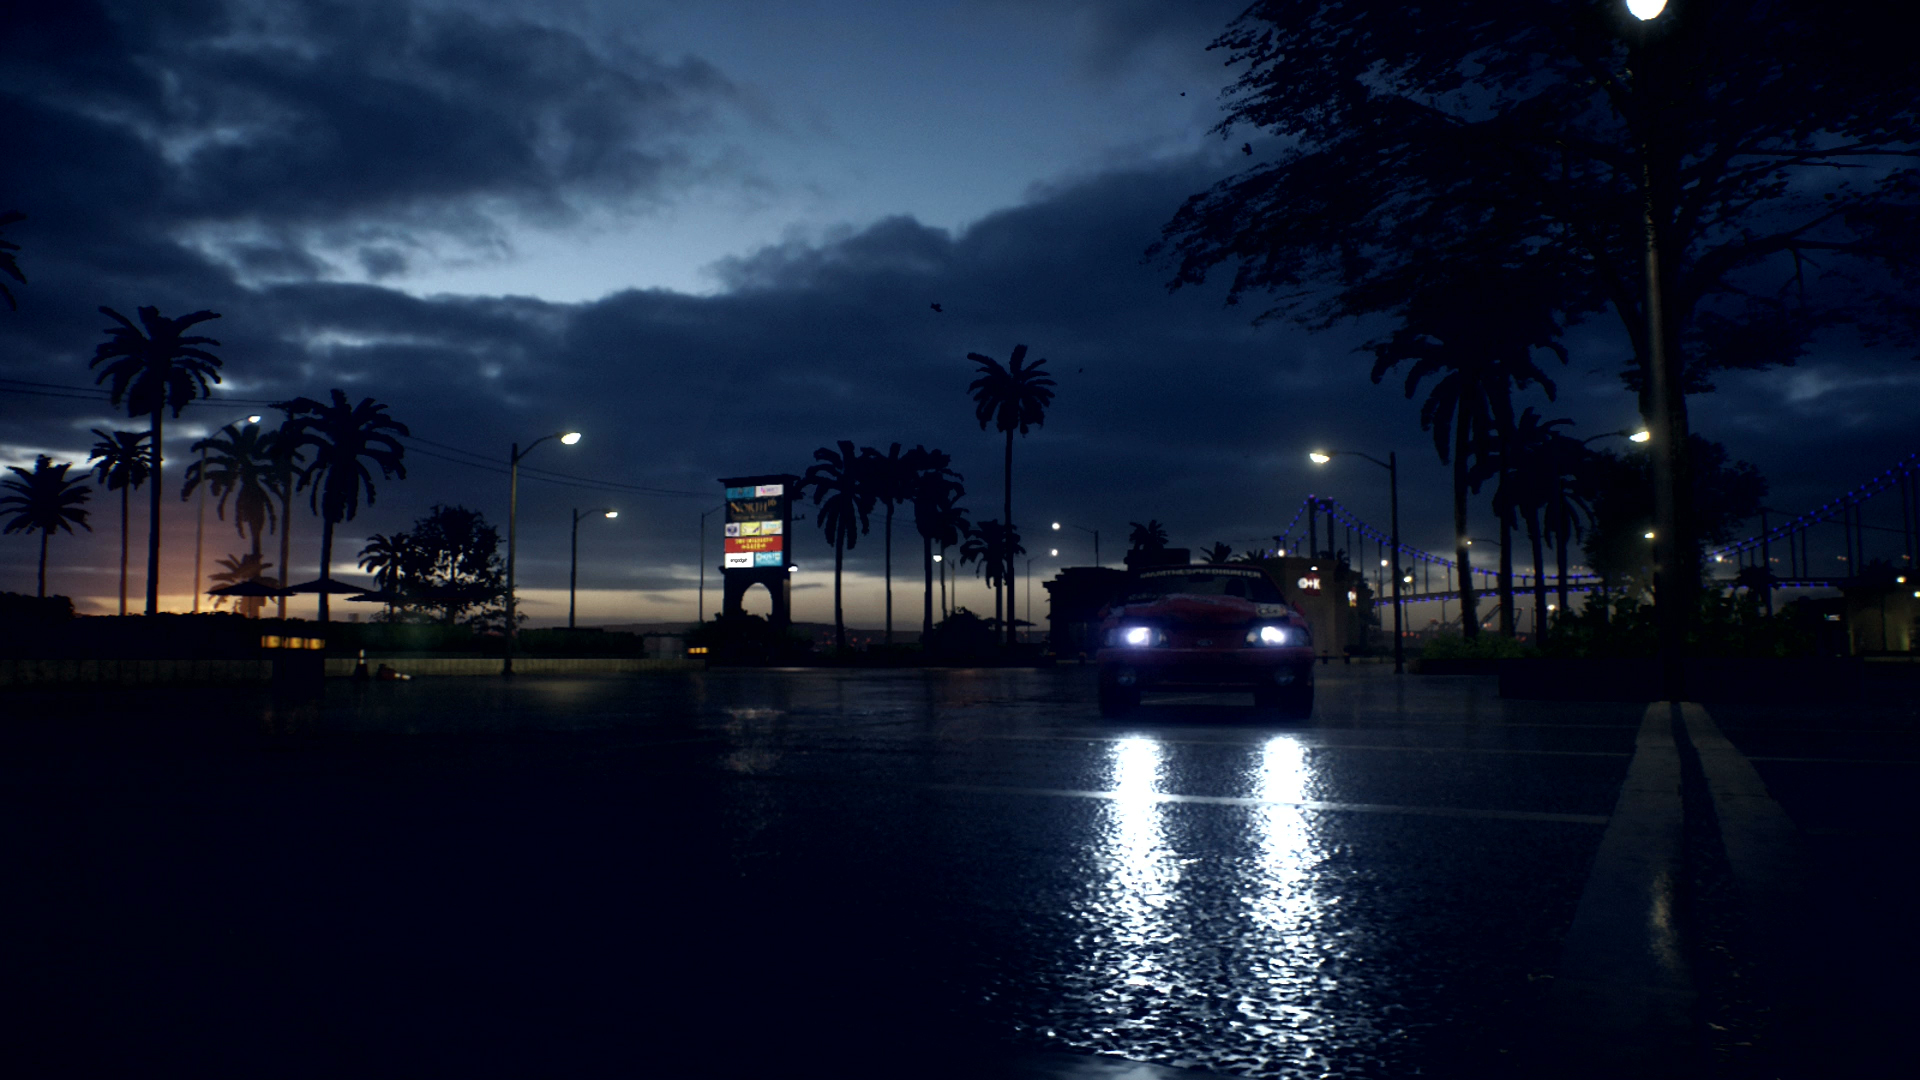 The new 'Need for Speed' looks like a movie shot on film - AIVAnet